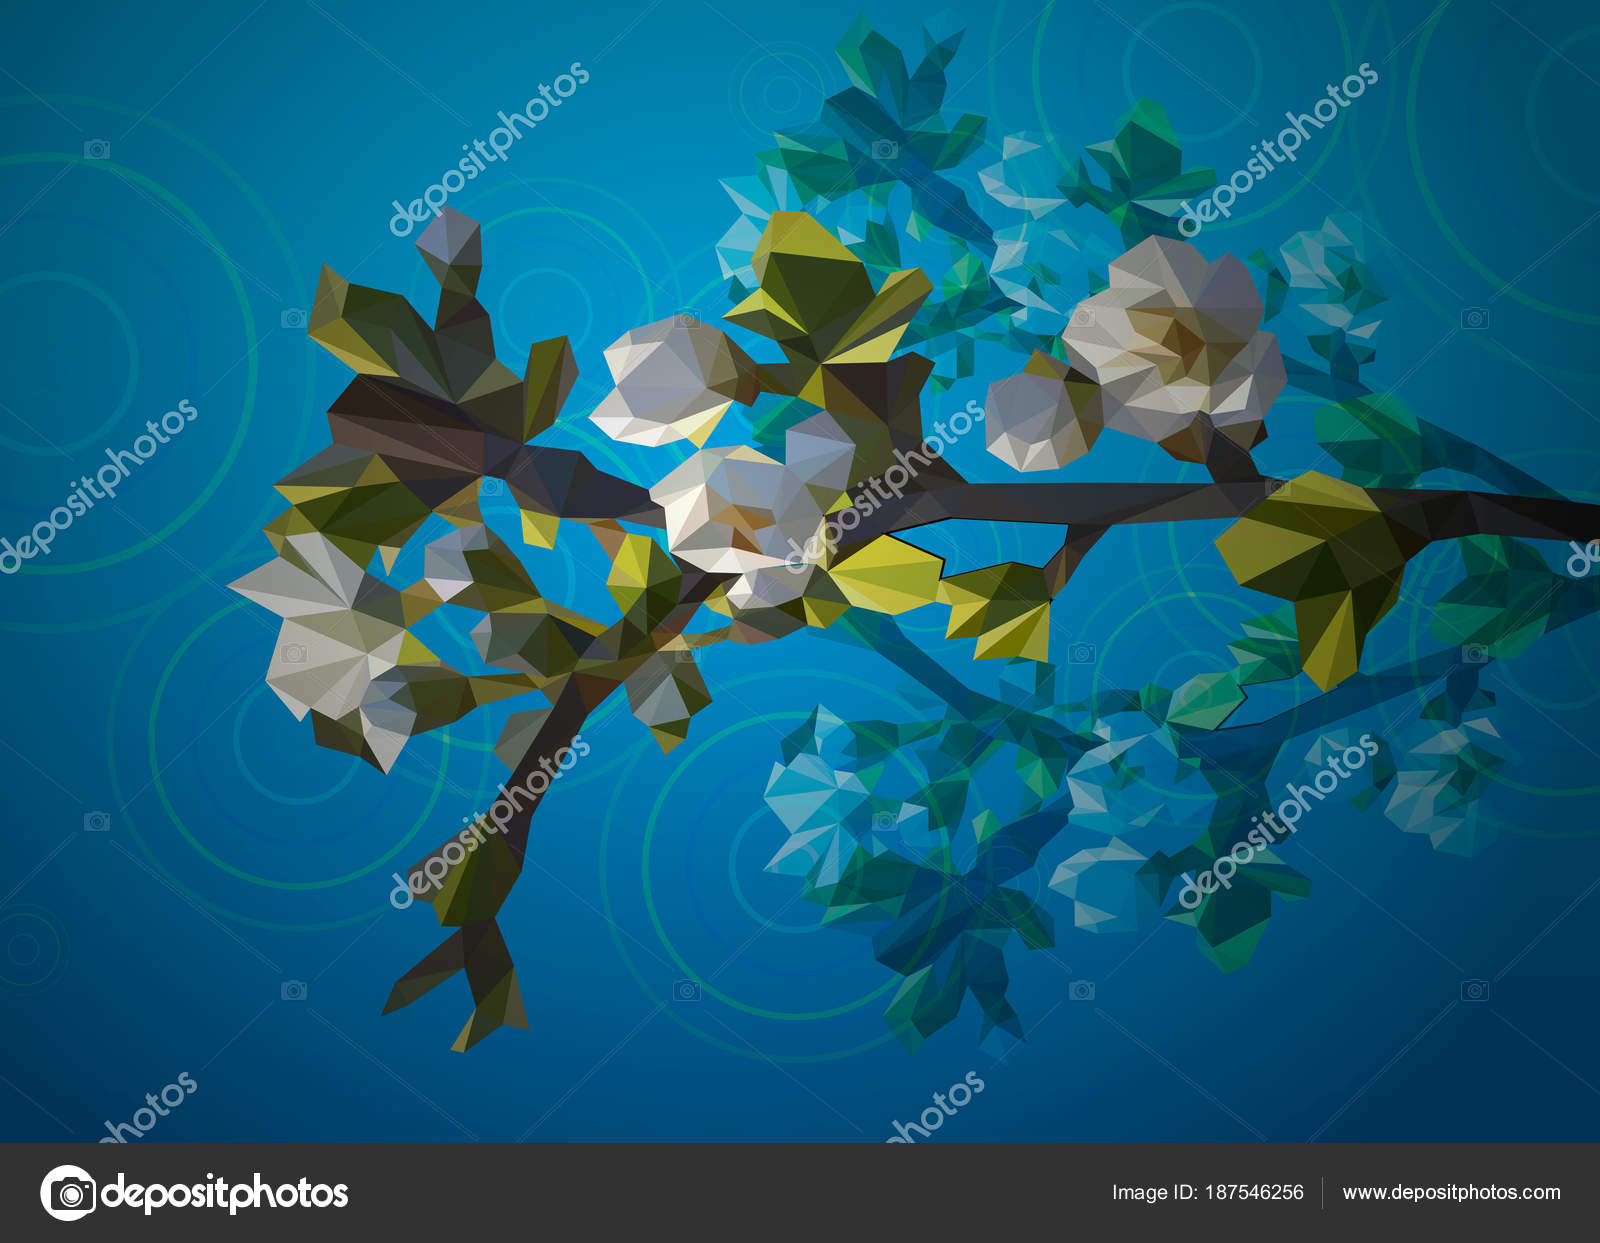 Blooming Branch Of A Tree With White Flowers From Triangles Spring